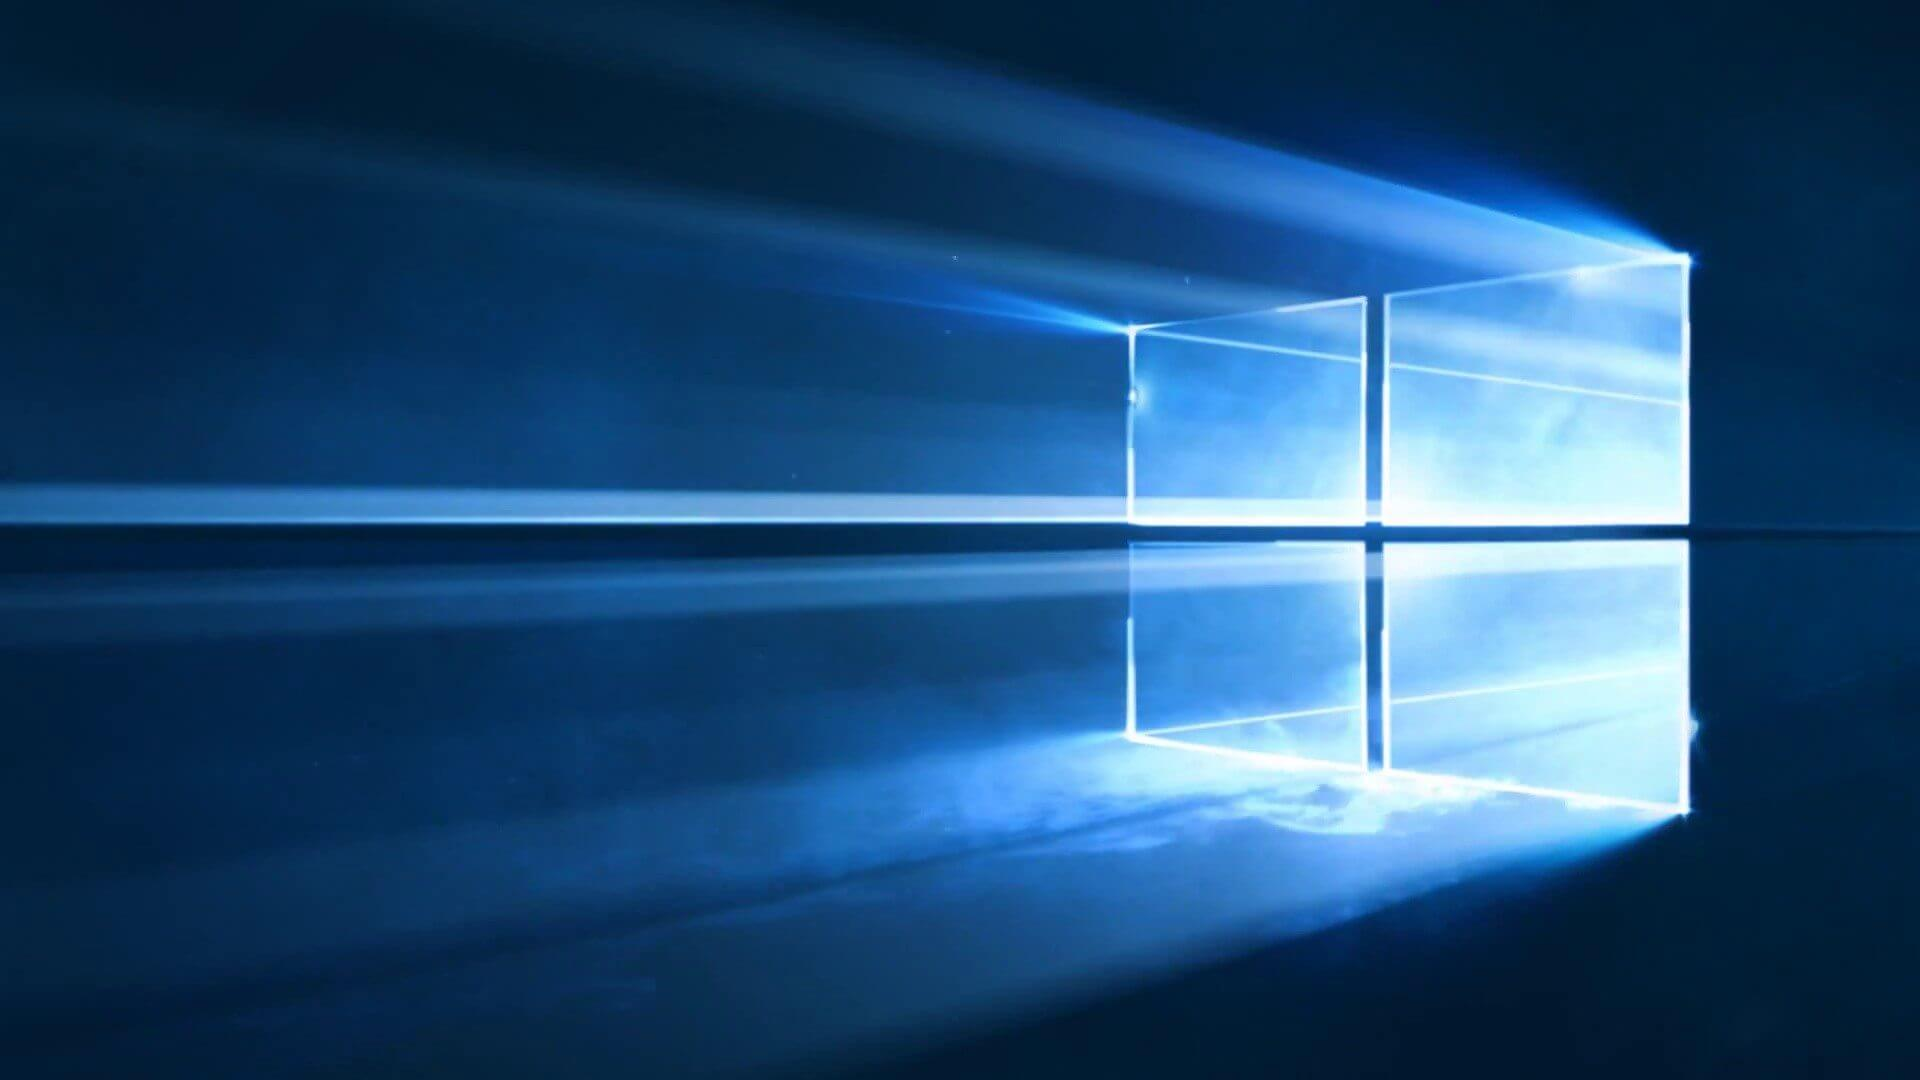 microsoft-reveals-the-official-windows-10-wallpaper-485311-4